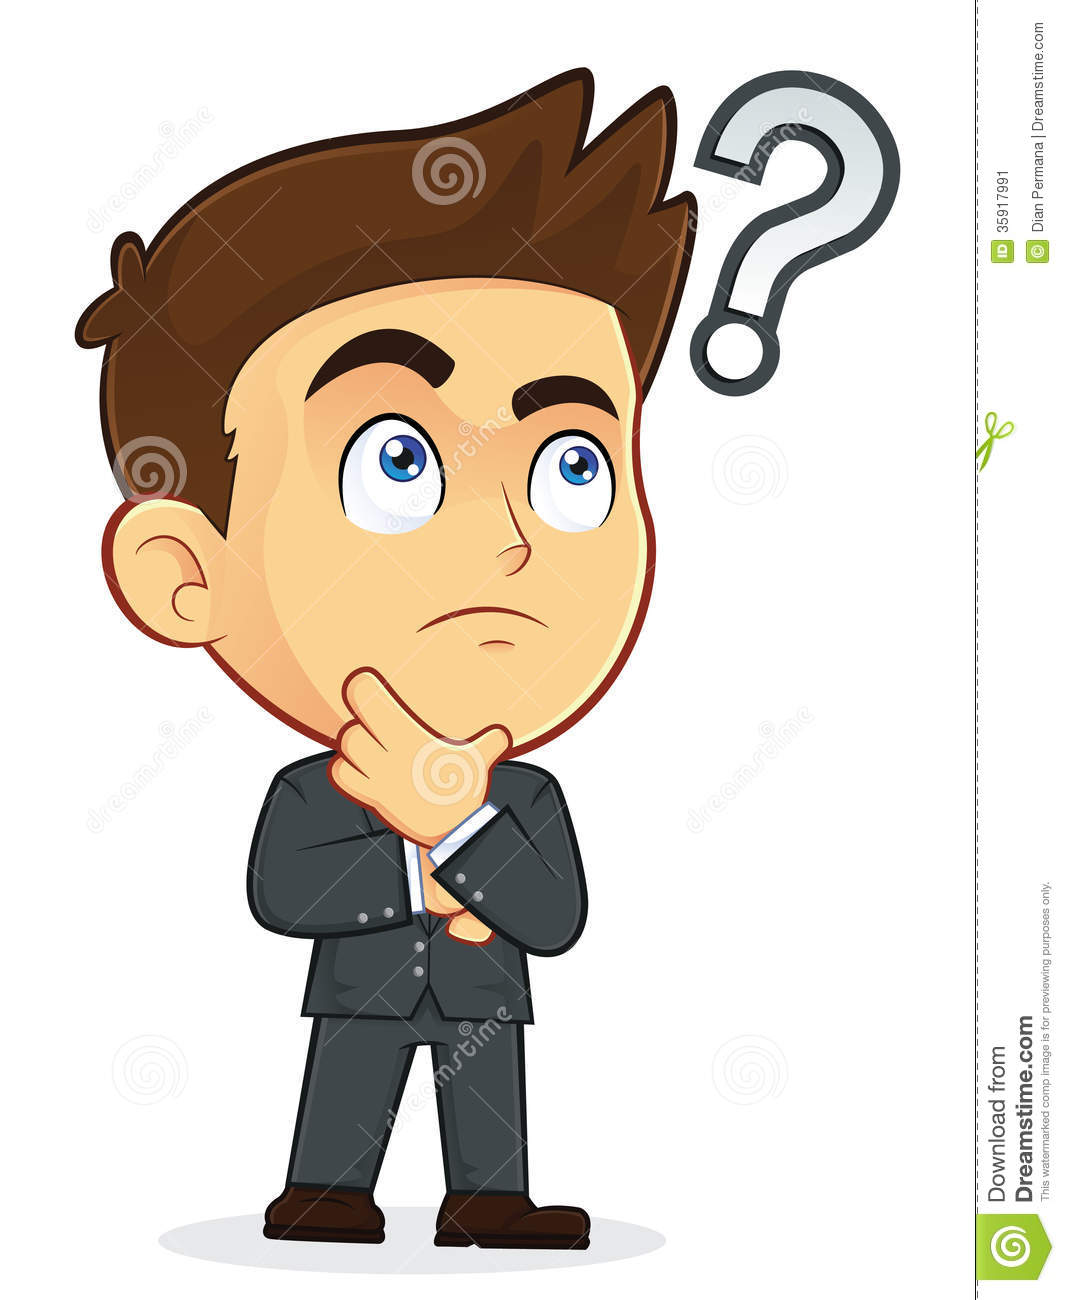 Cartoon Characters Guys : Businessman touching chin with question mark stock image